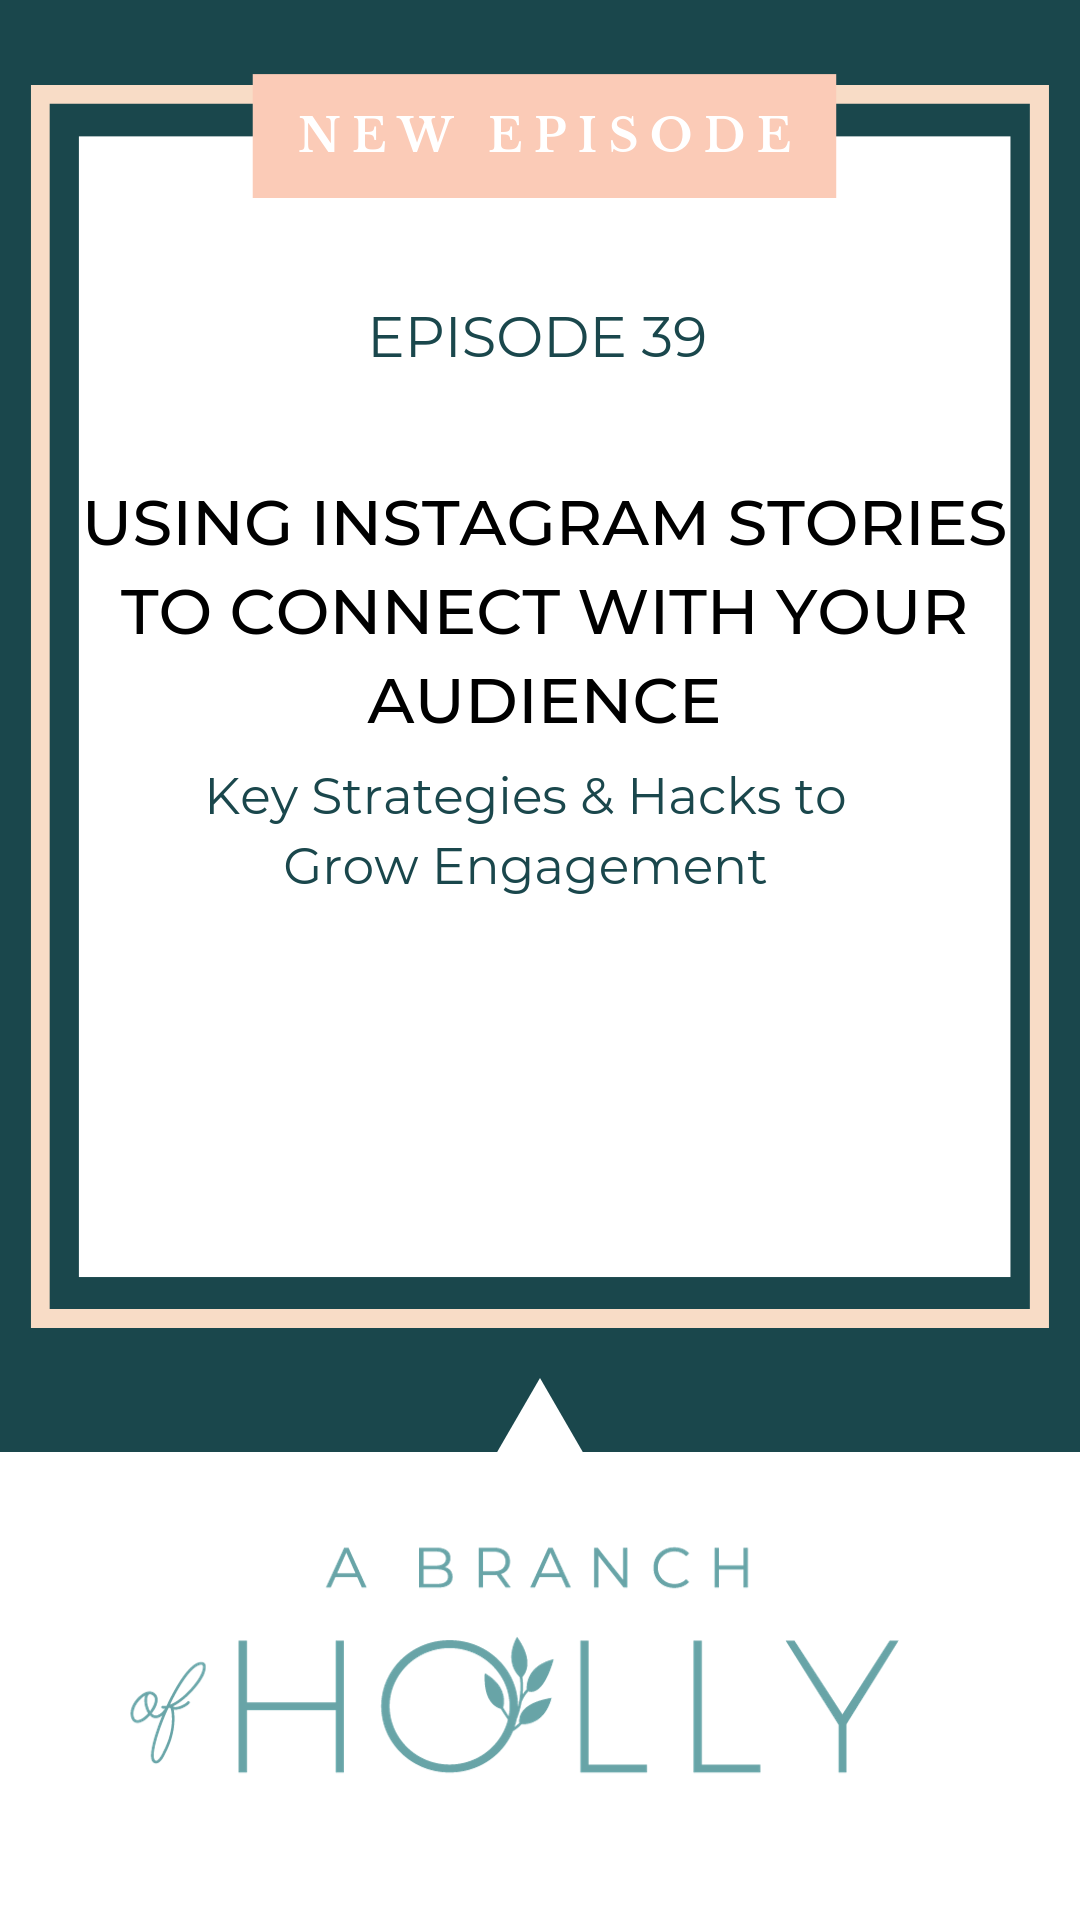 Want to learn how to use Instagram Stories effectively for business? In this episode, I'll share with you ideas to get more engagement, including design elements to keep in mind, how to get creative with questions and so much more. Repin to listen to the full episode on how to use Instagram Stories for business! #instagramstories #instagram #business